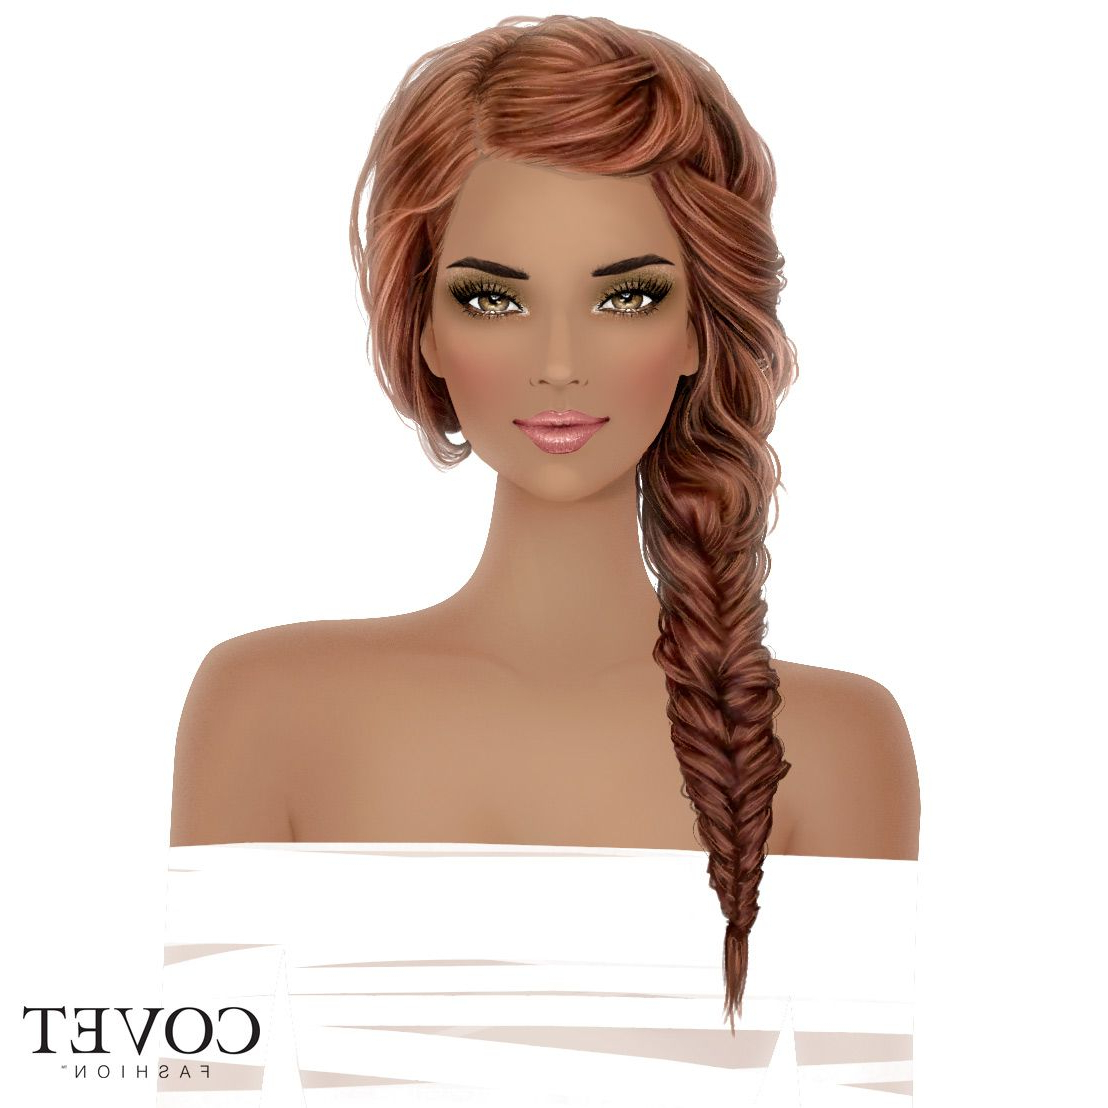 2019 Fishtail Side Braided Hairstyles Intended For Covet Fashion (View 15 of 20)